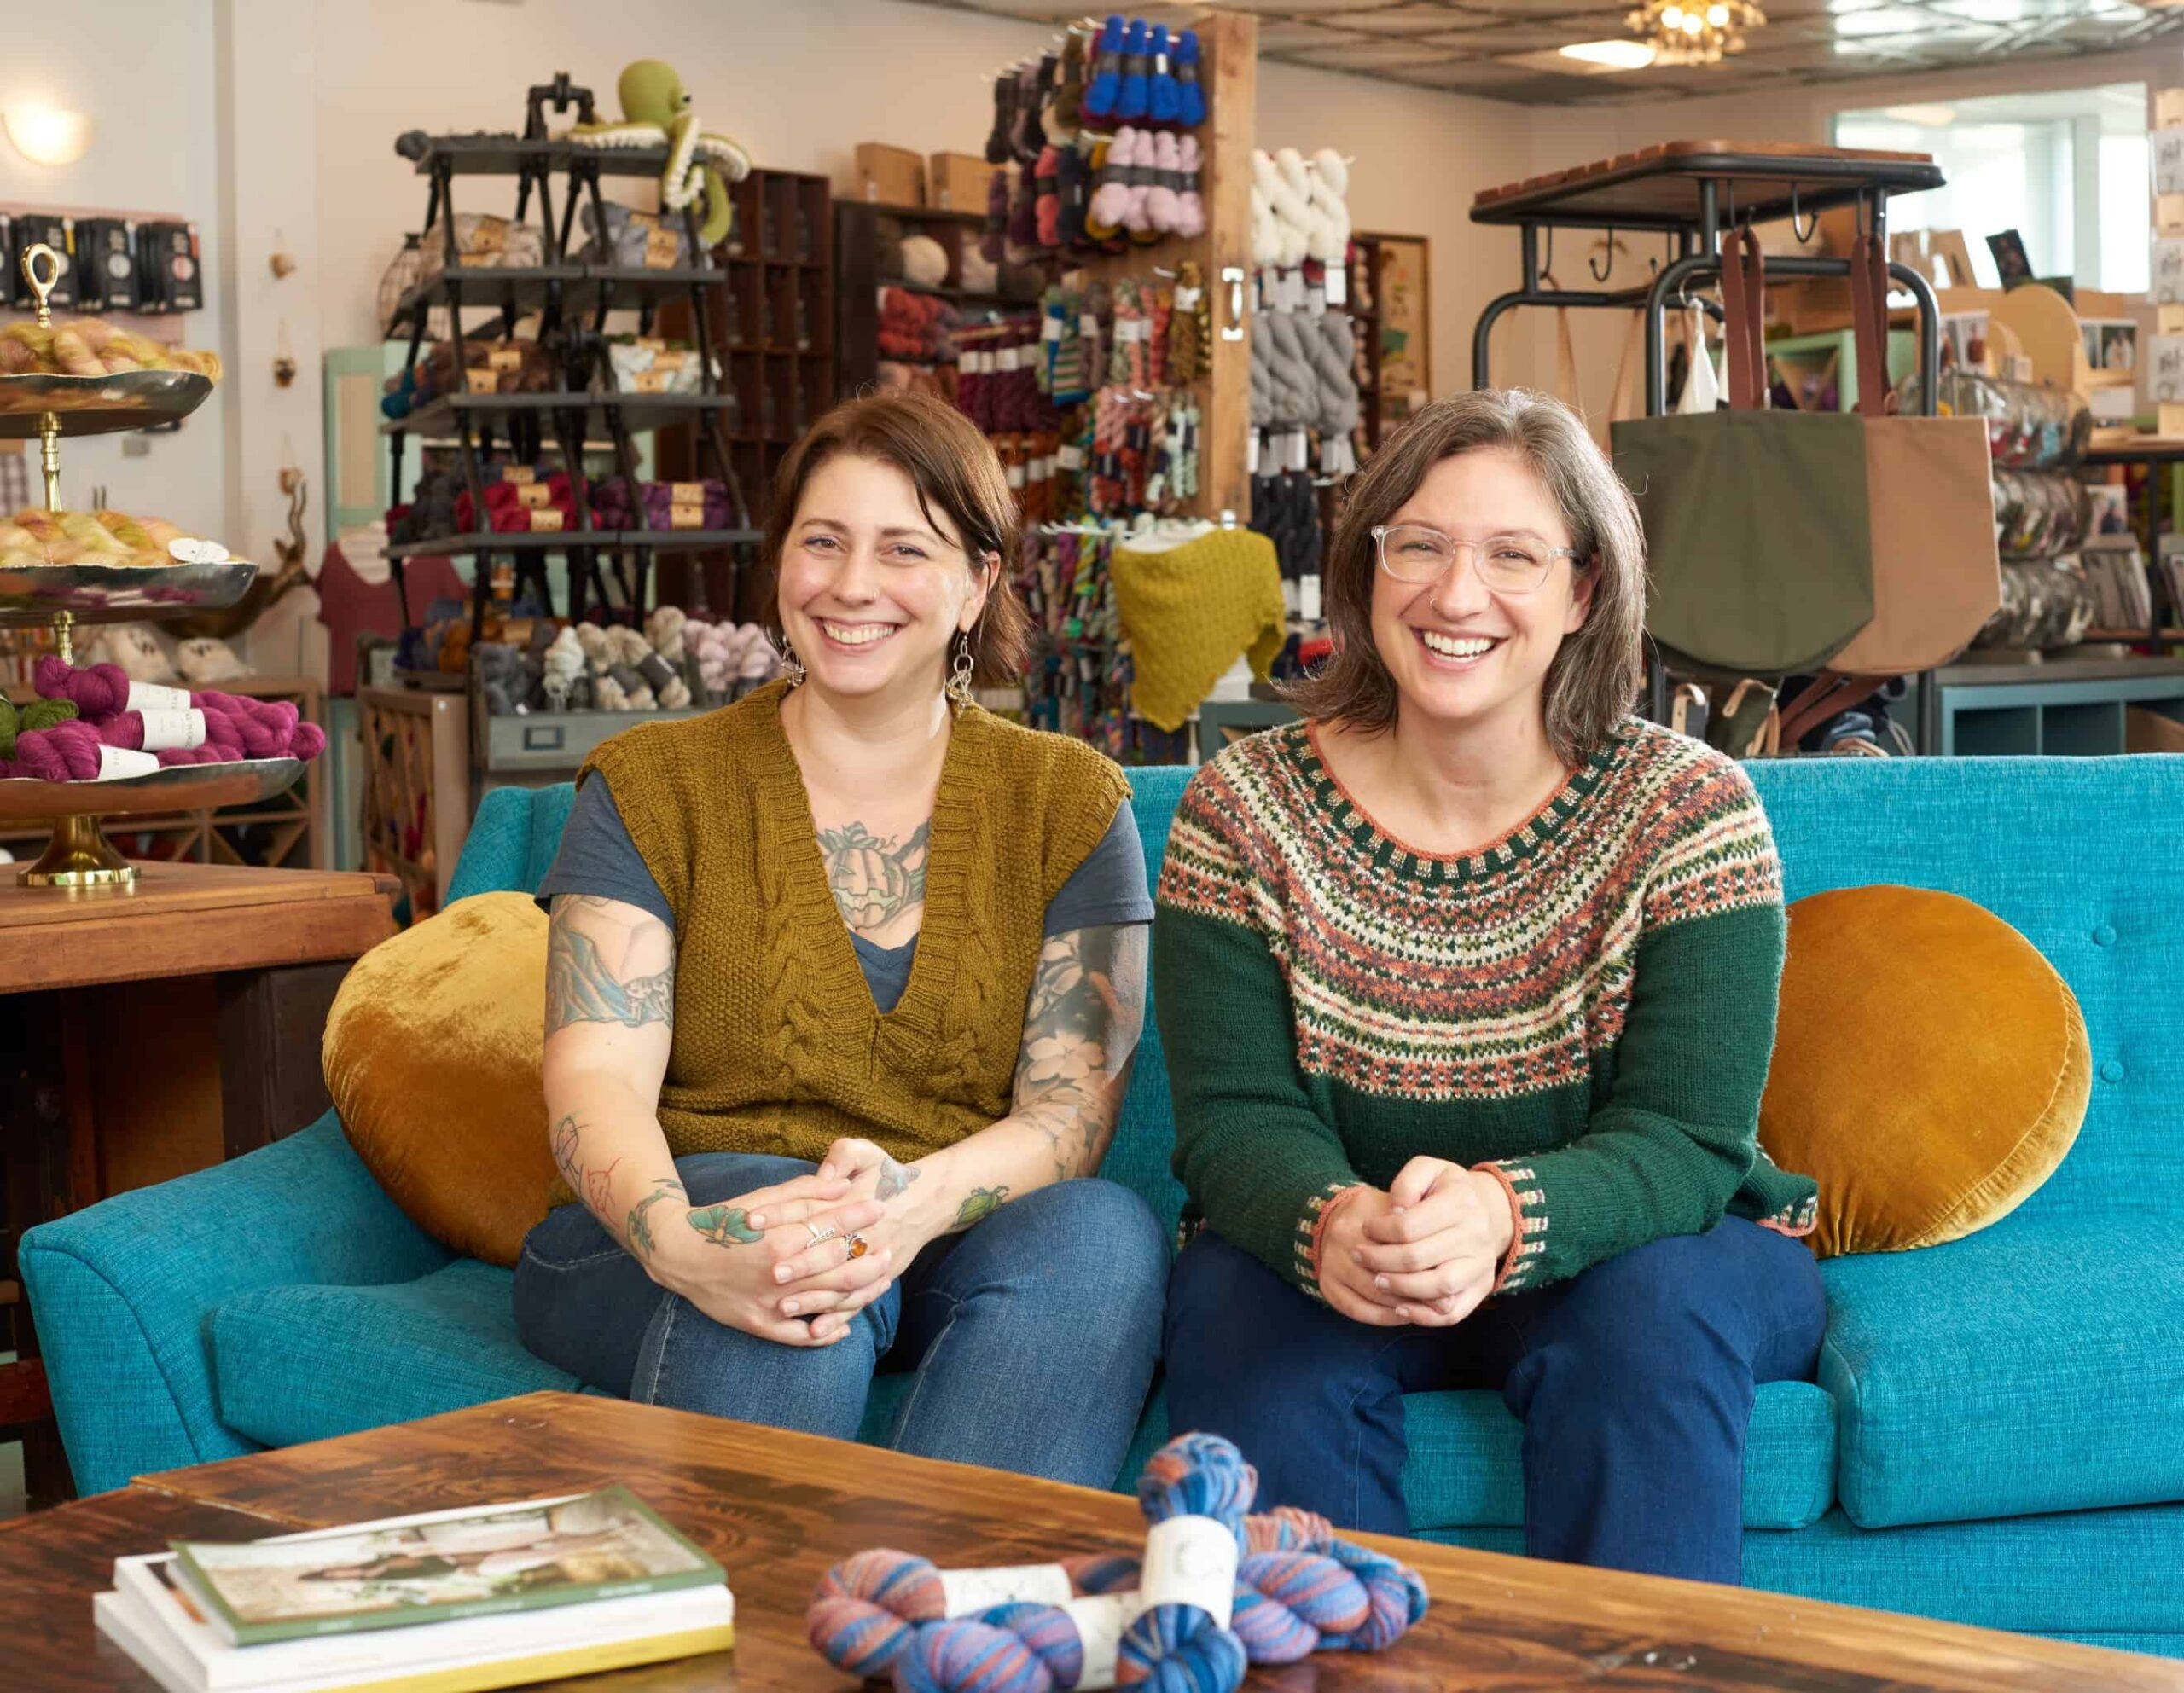 Two light-skinned women wearing sweaters sit smiling on a teal sofa.